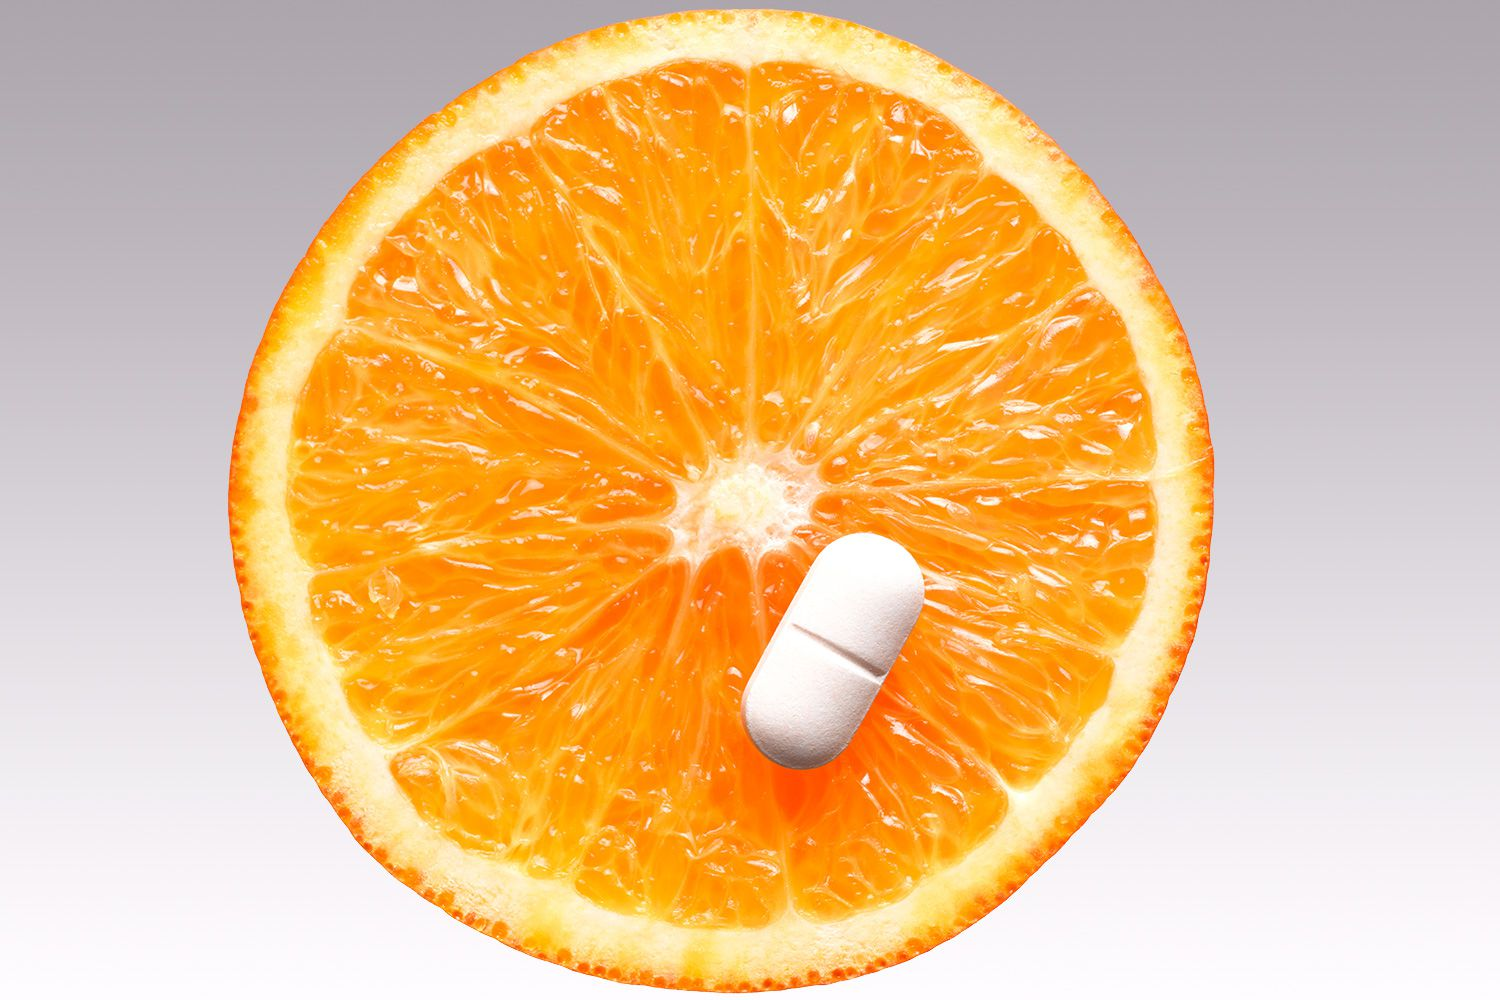 Making History With Vitamin C Powerpoint: Vitamin C Determination By Iodine Titration